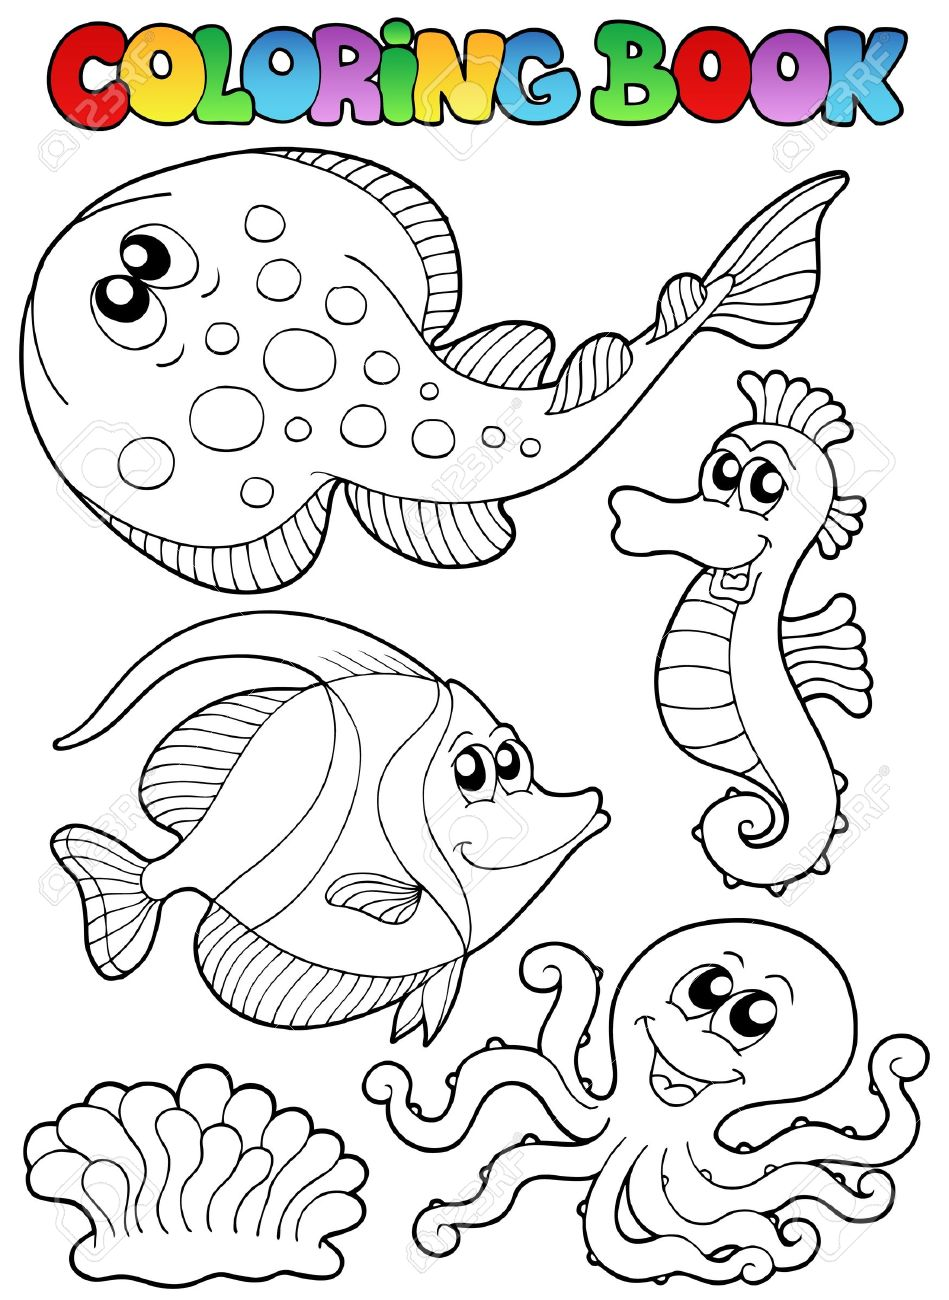 Coloring book with sea animals 3 - vector illustration. Stock Vector - 10565543